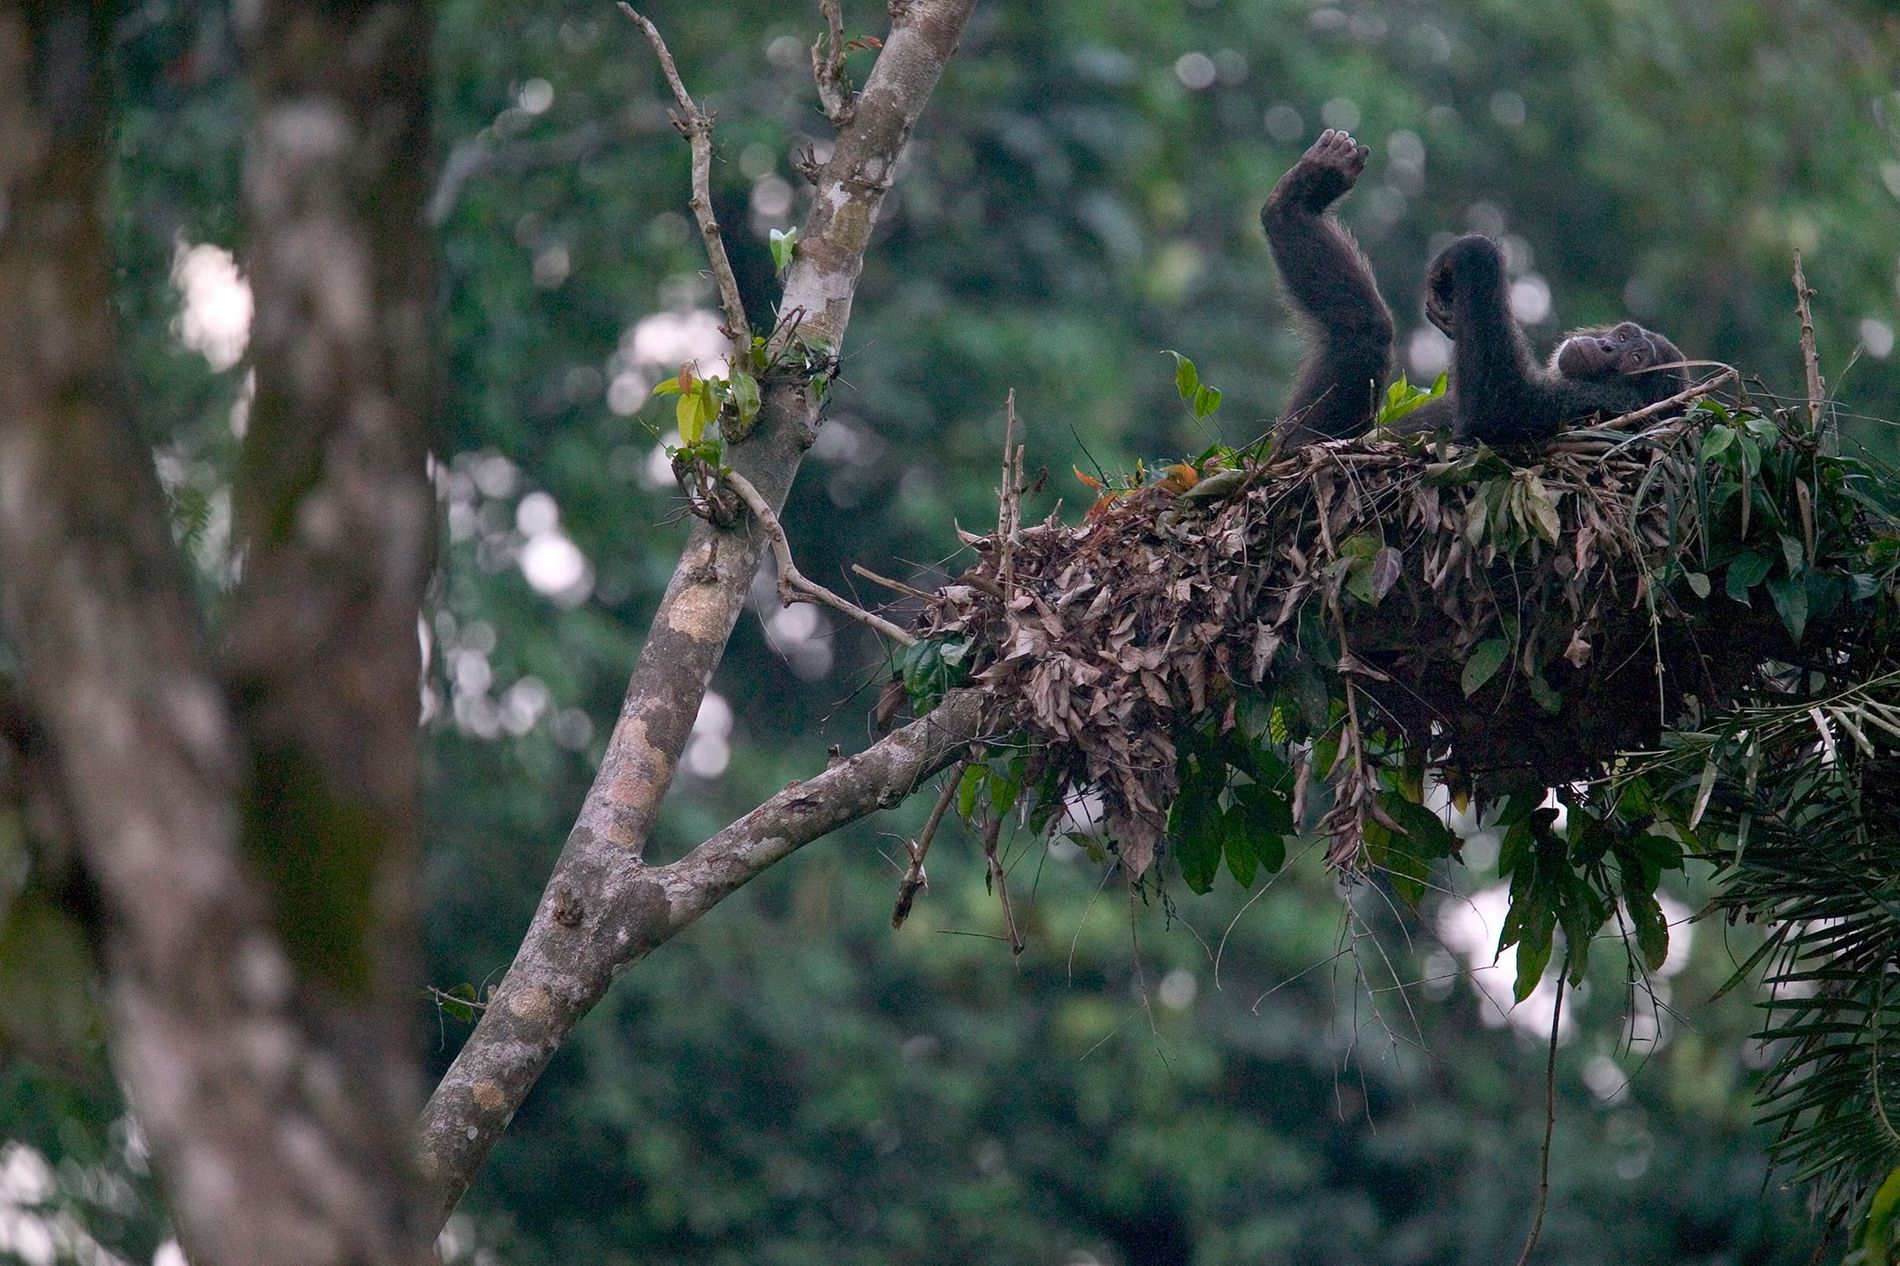 A chimpanzee relaxes in its nest in Nigeria's Cross River State.